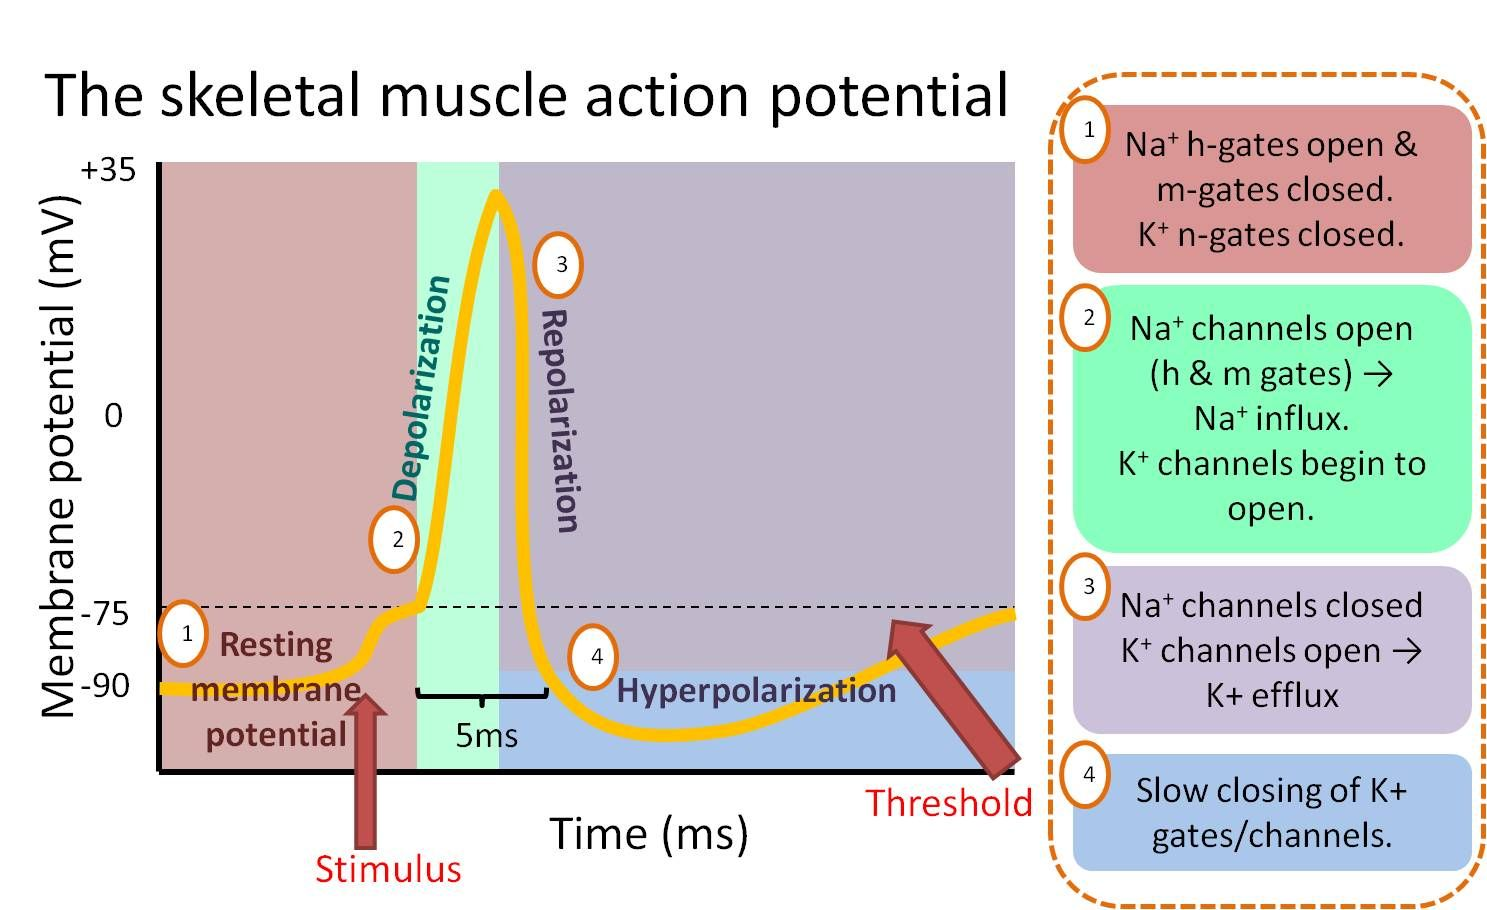 Skeletal Muscle Action Potential